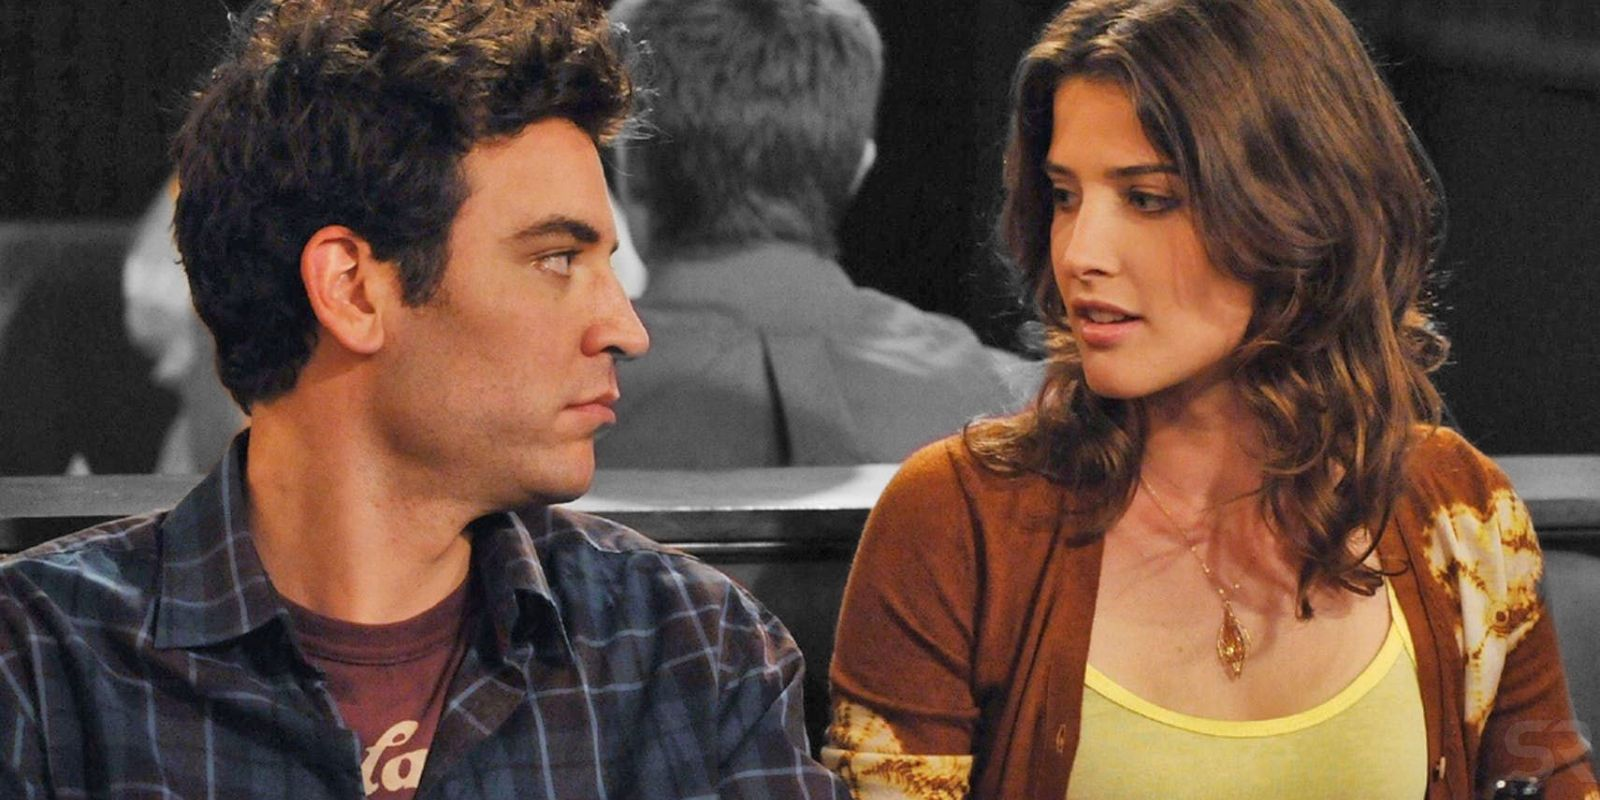 How I Met Your Mother Revealed Ted & Robin's Breakup In A Flash-Forward